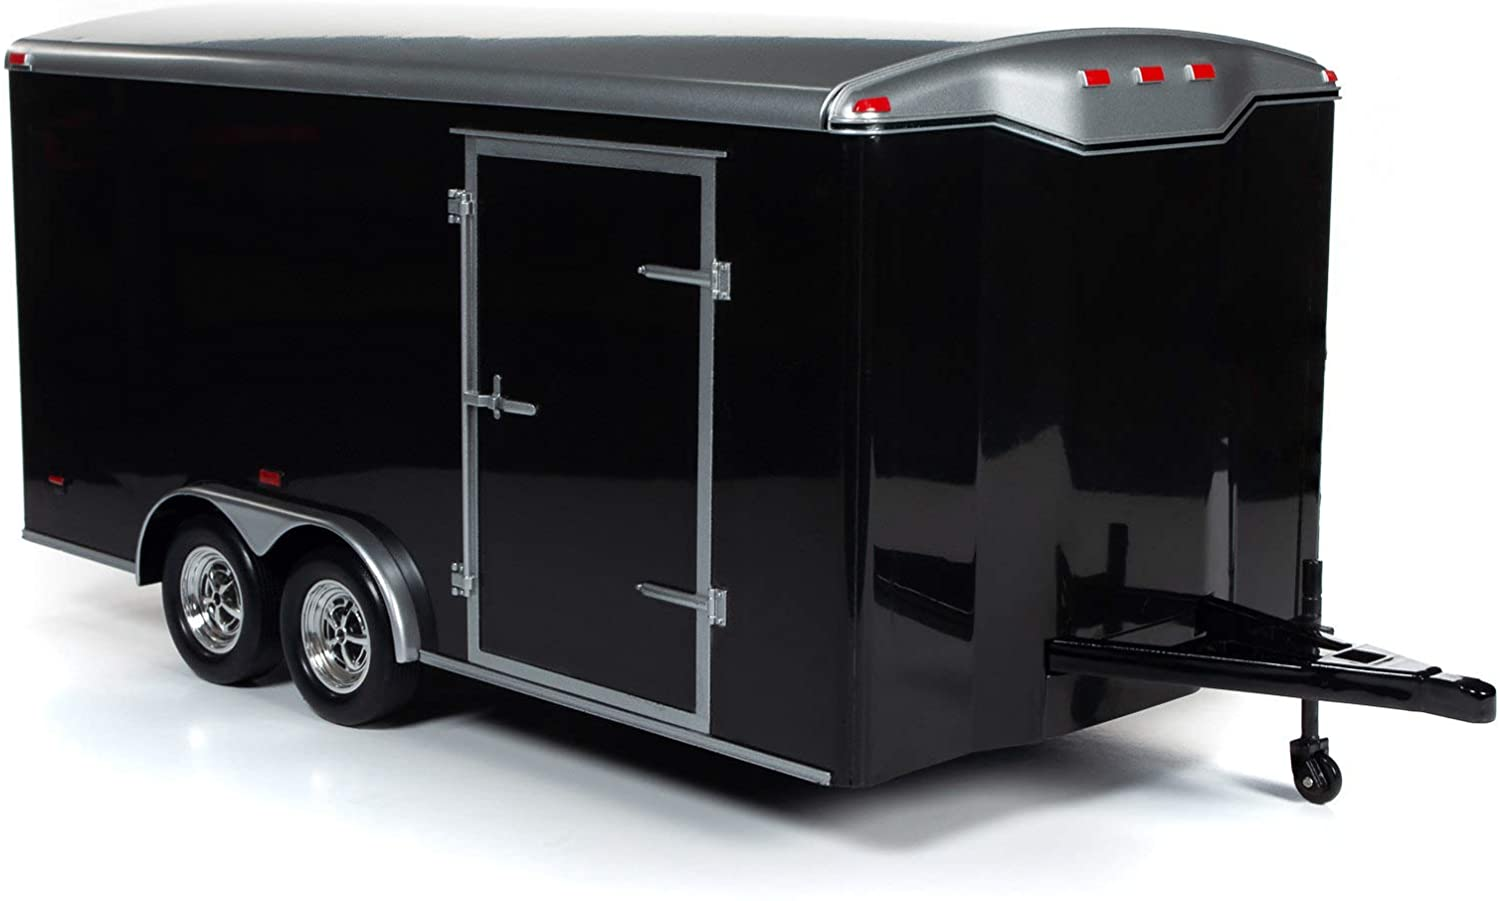 American Muscle Four Wheel Enclosed Trailer Black with Silver Top for 1/18 Scale Model Cars by Autoworld AMM1217